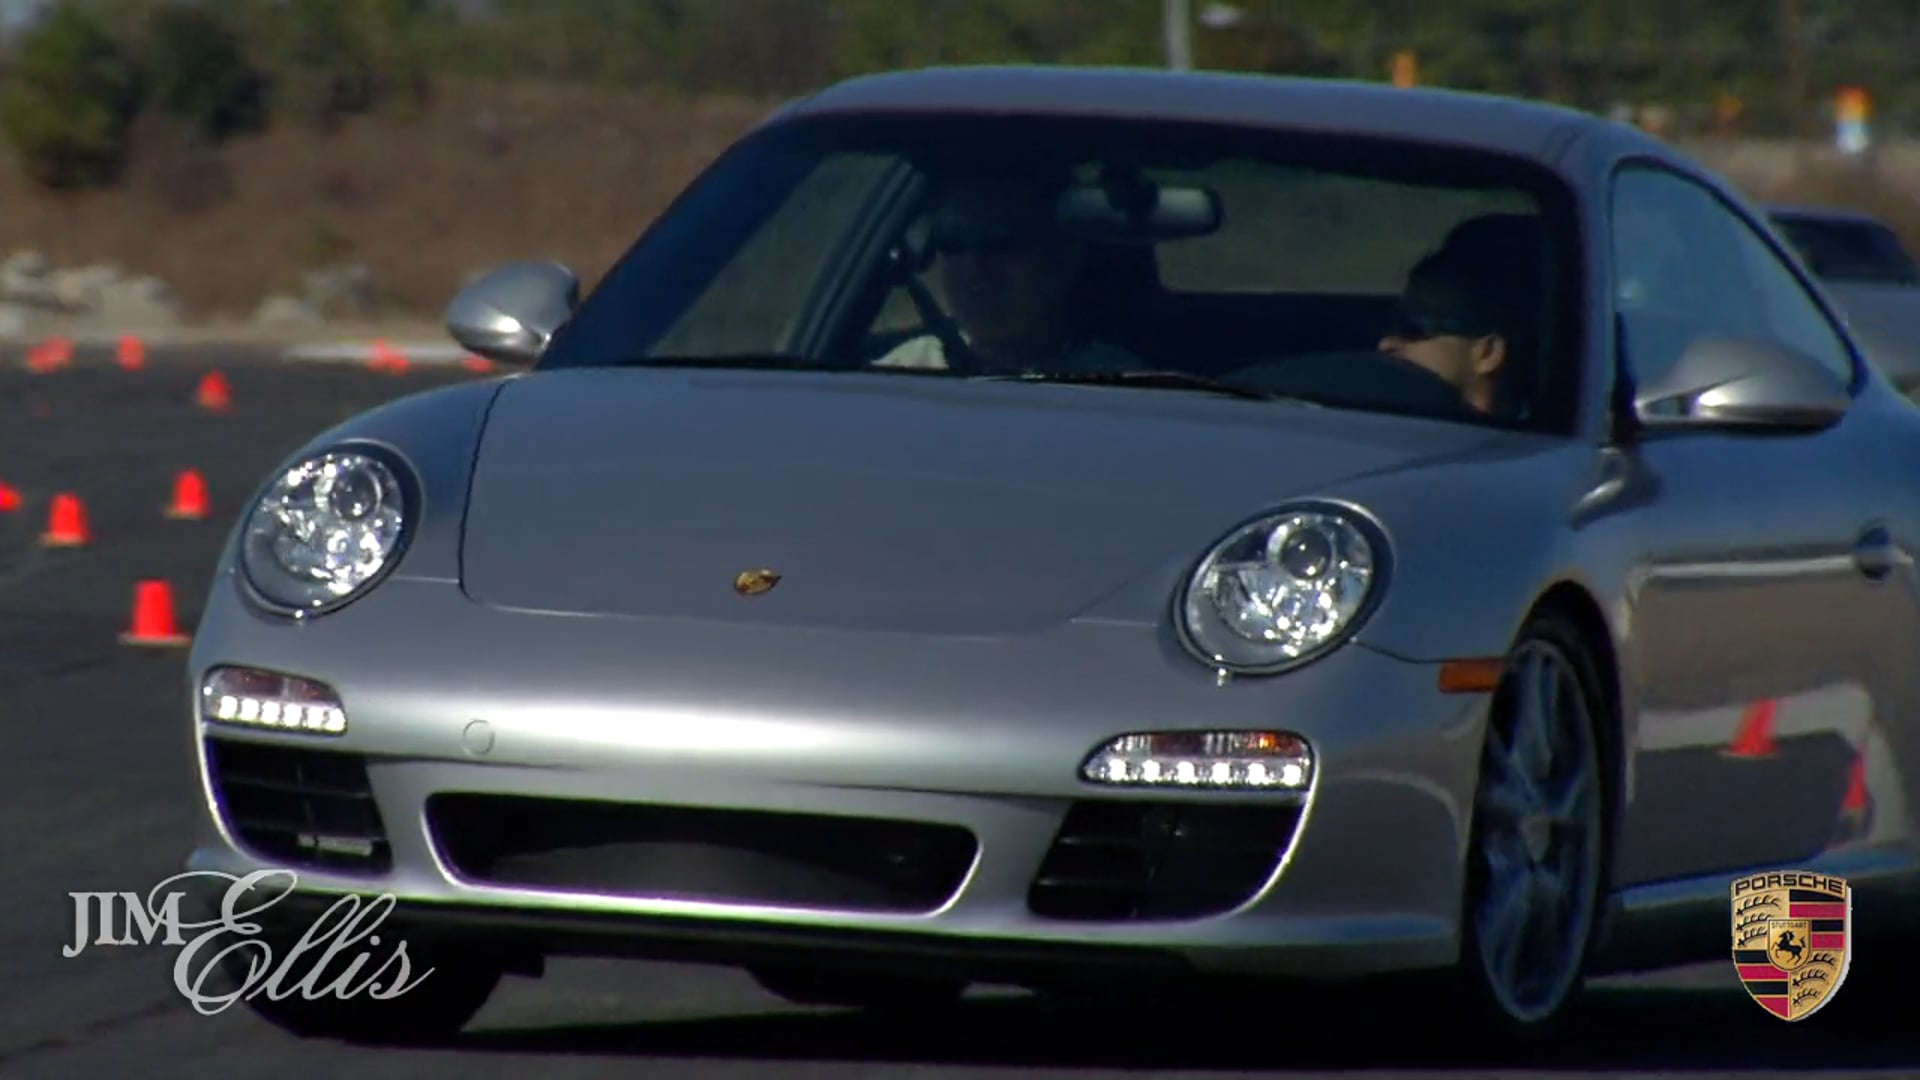 Porsche Sport Test Drive (2010) Lensed and edited by Jose A. Acosta for Lean Inc. and Jim Ellis.